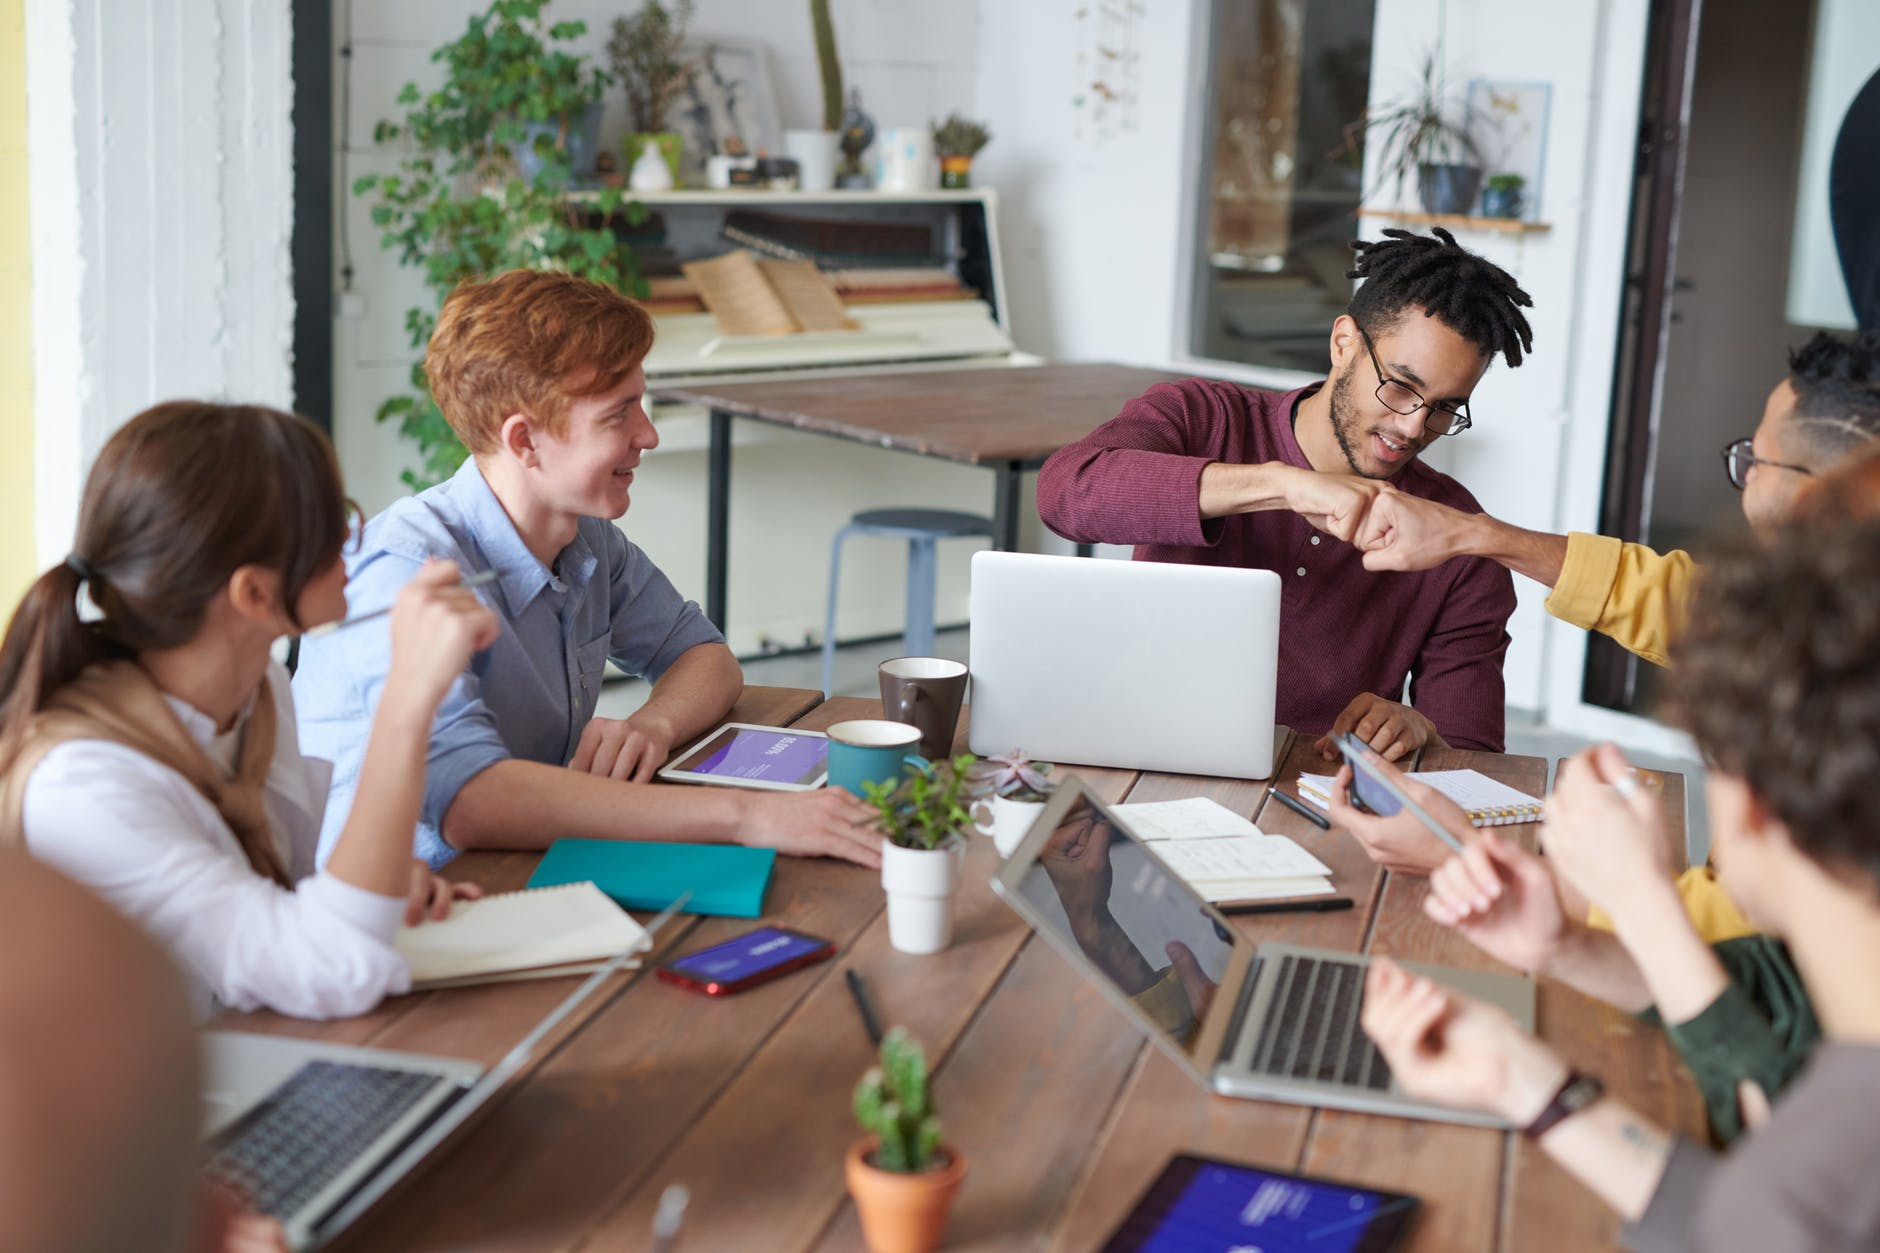 4 Ways to Inspire Employee Motivation in the Workplace